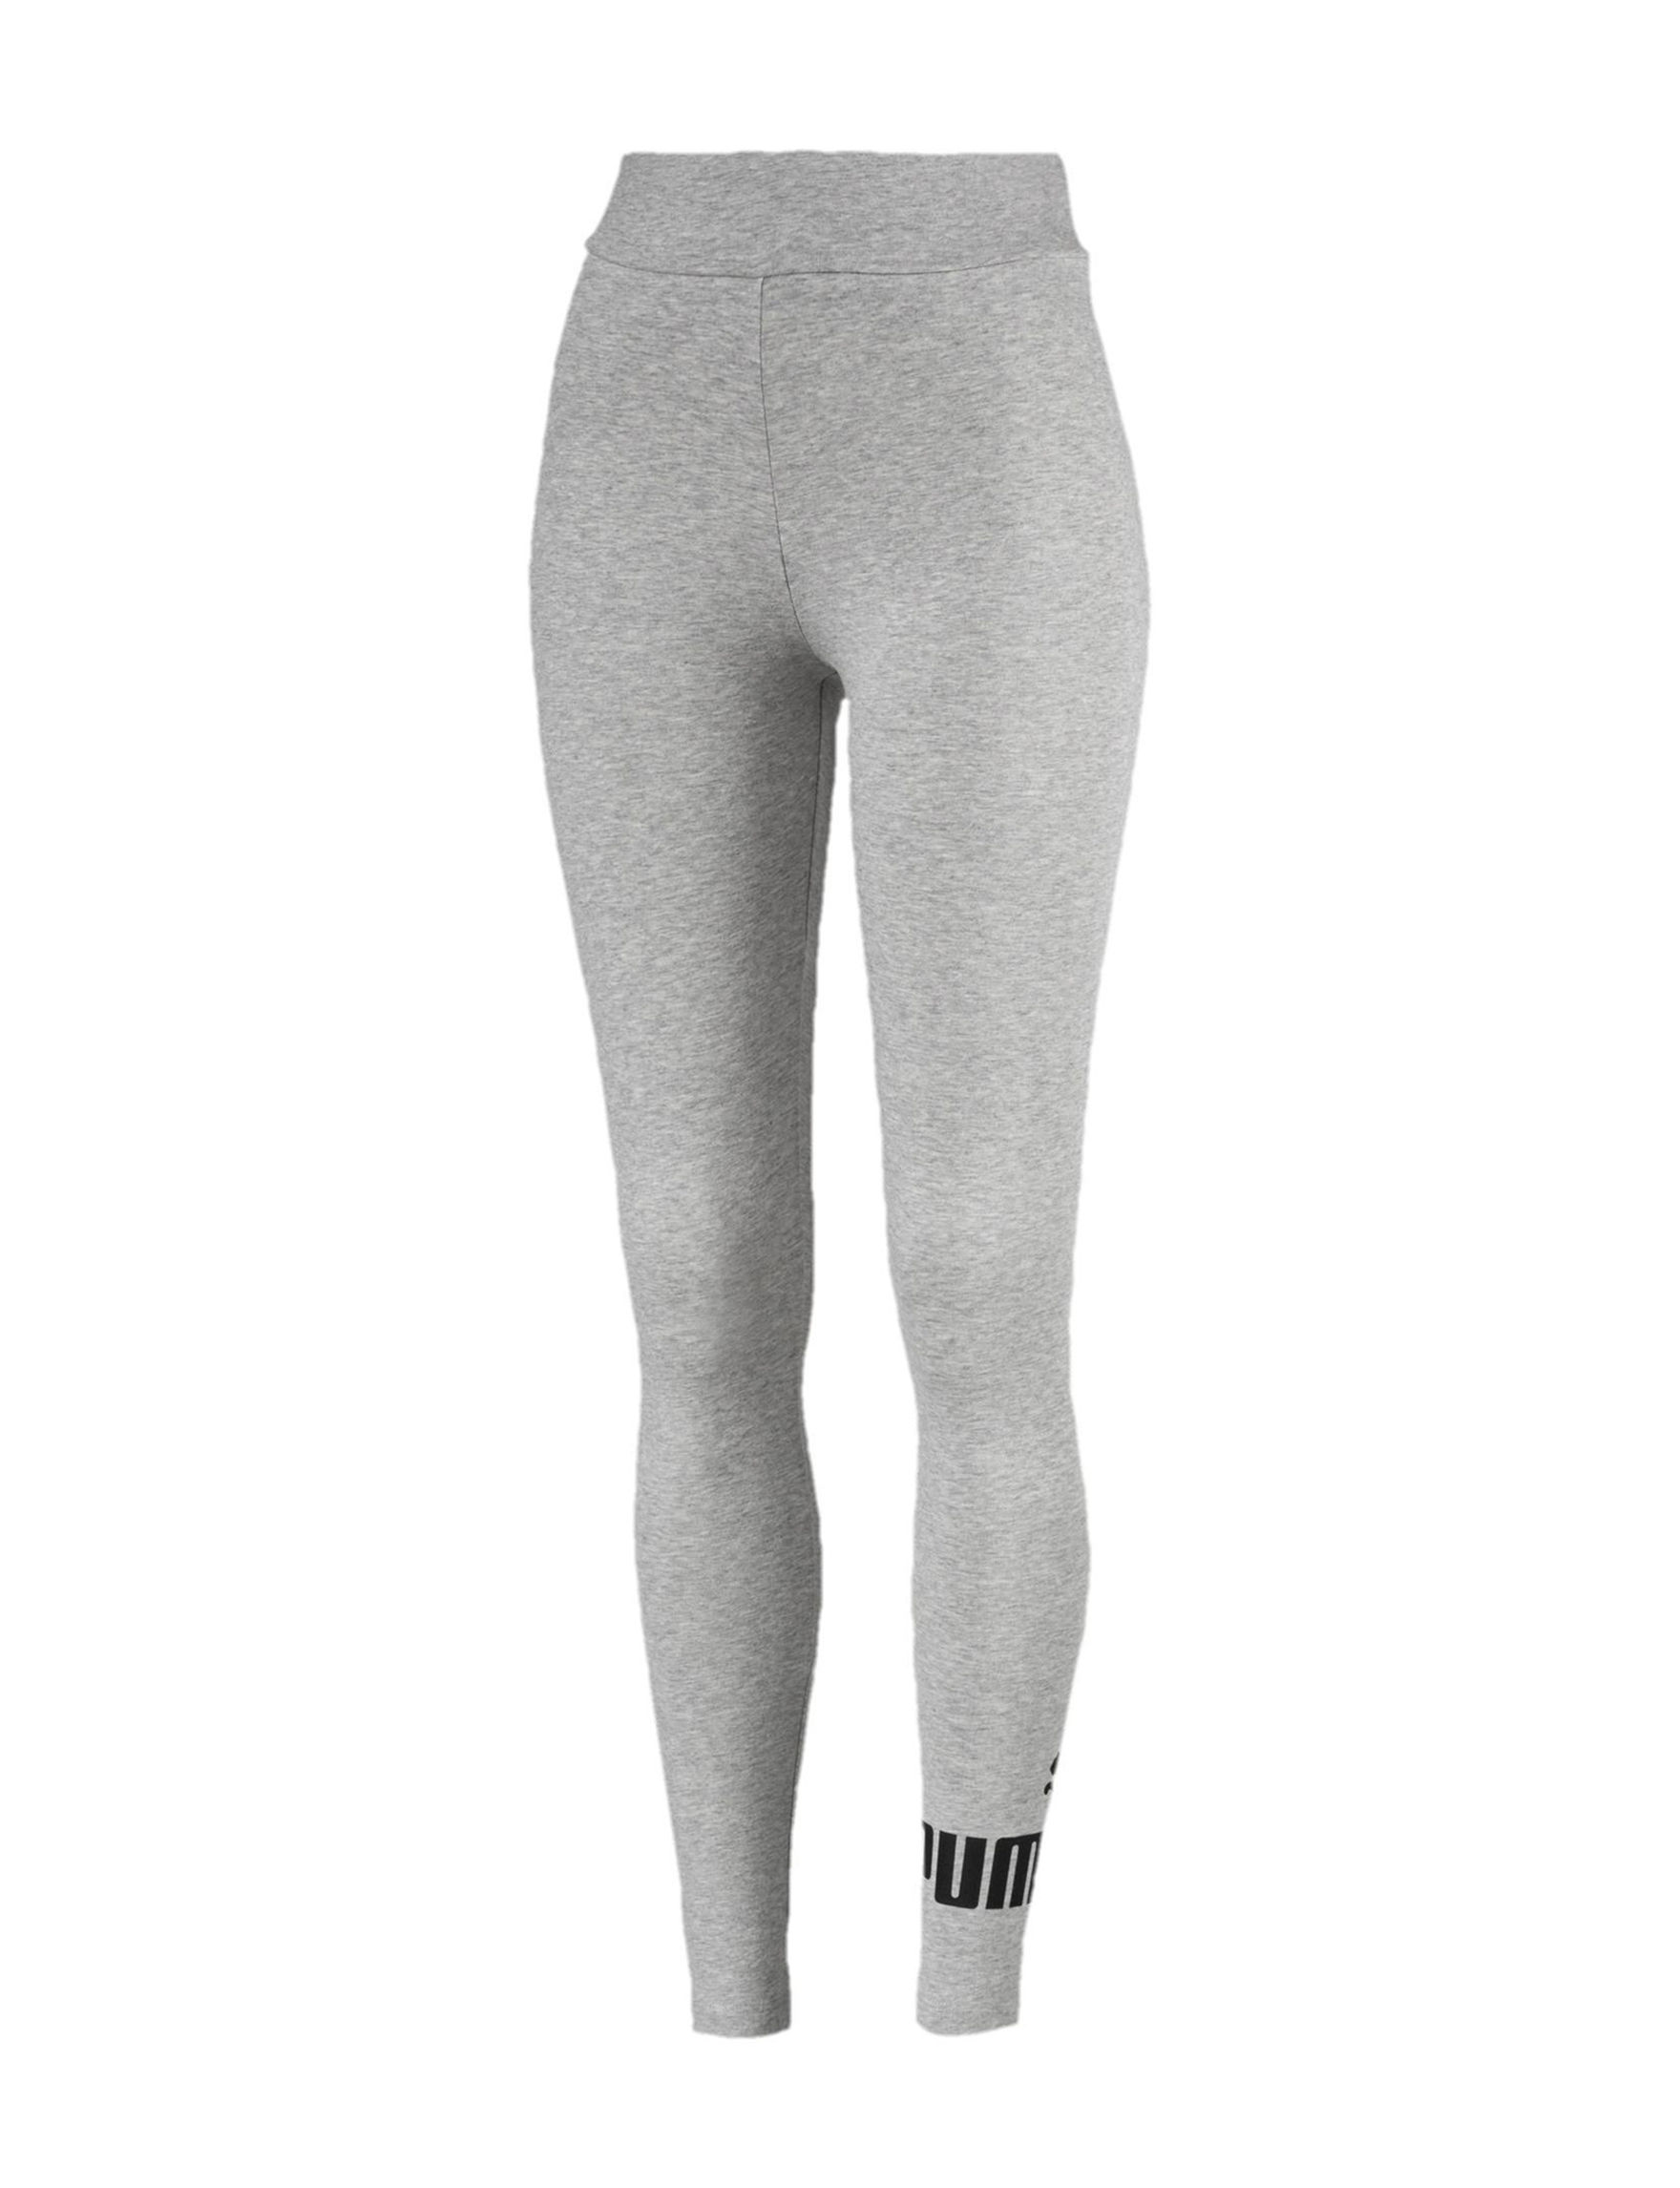 Puma Dark Heather Grey Active Leggings